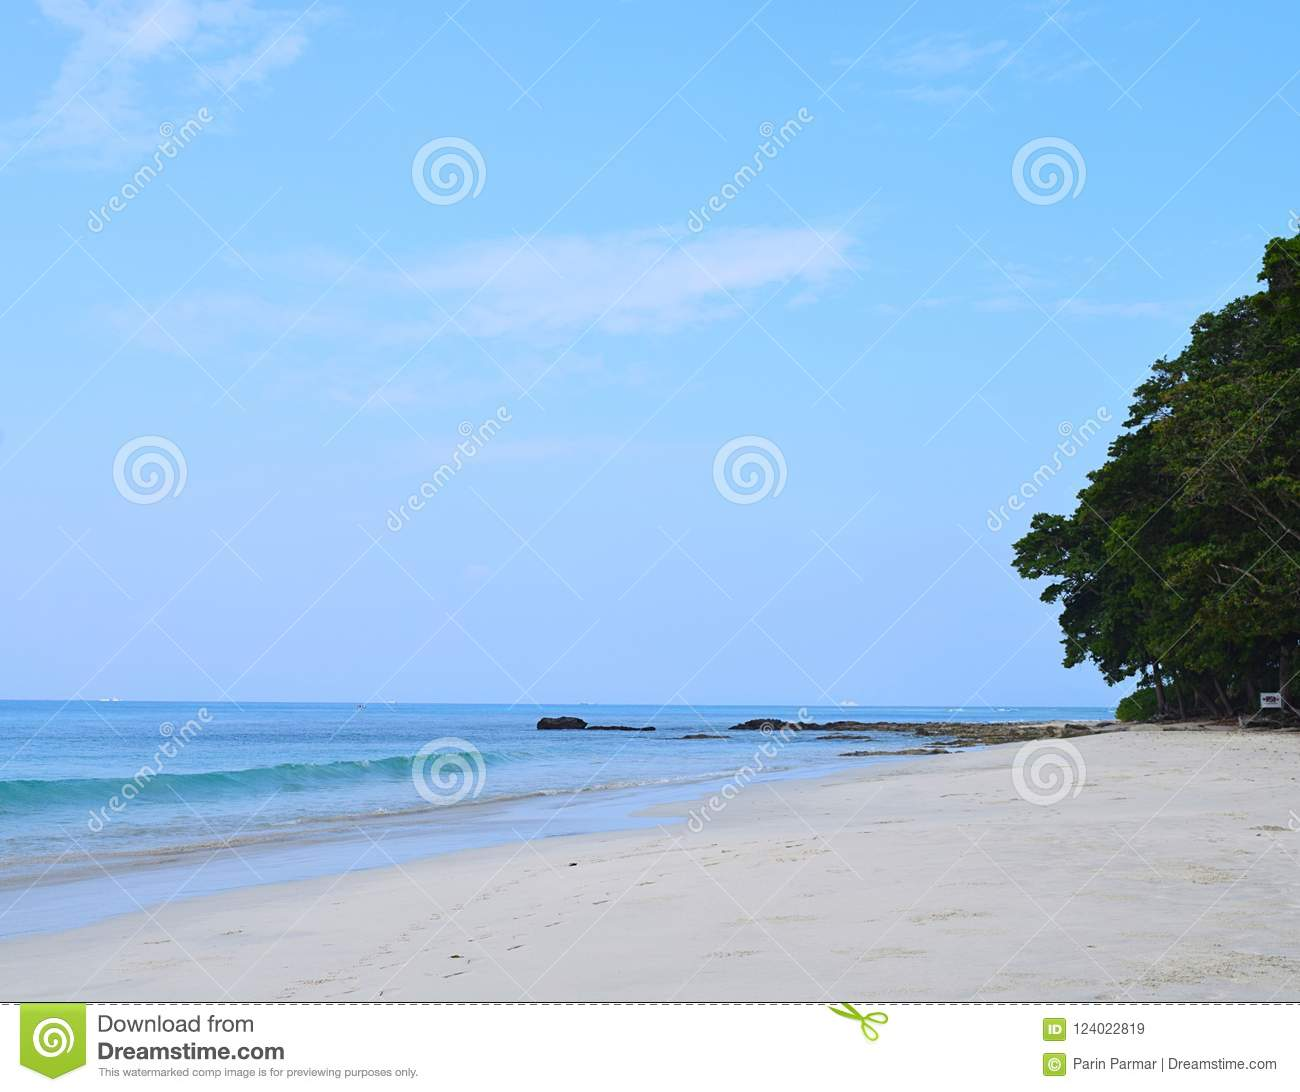 Havelock Island: Peaceful Landscape At Radhanagar Beach, Havelock Island